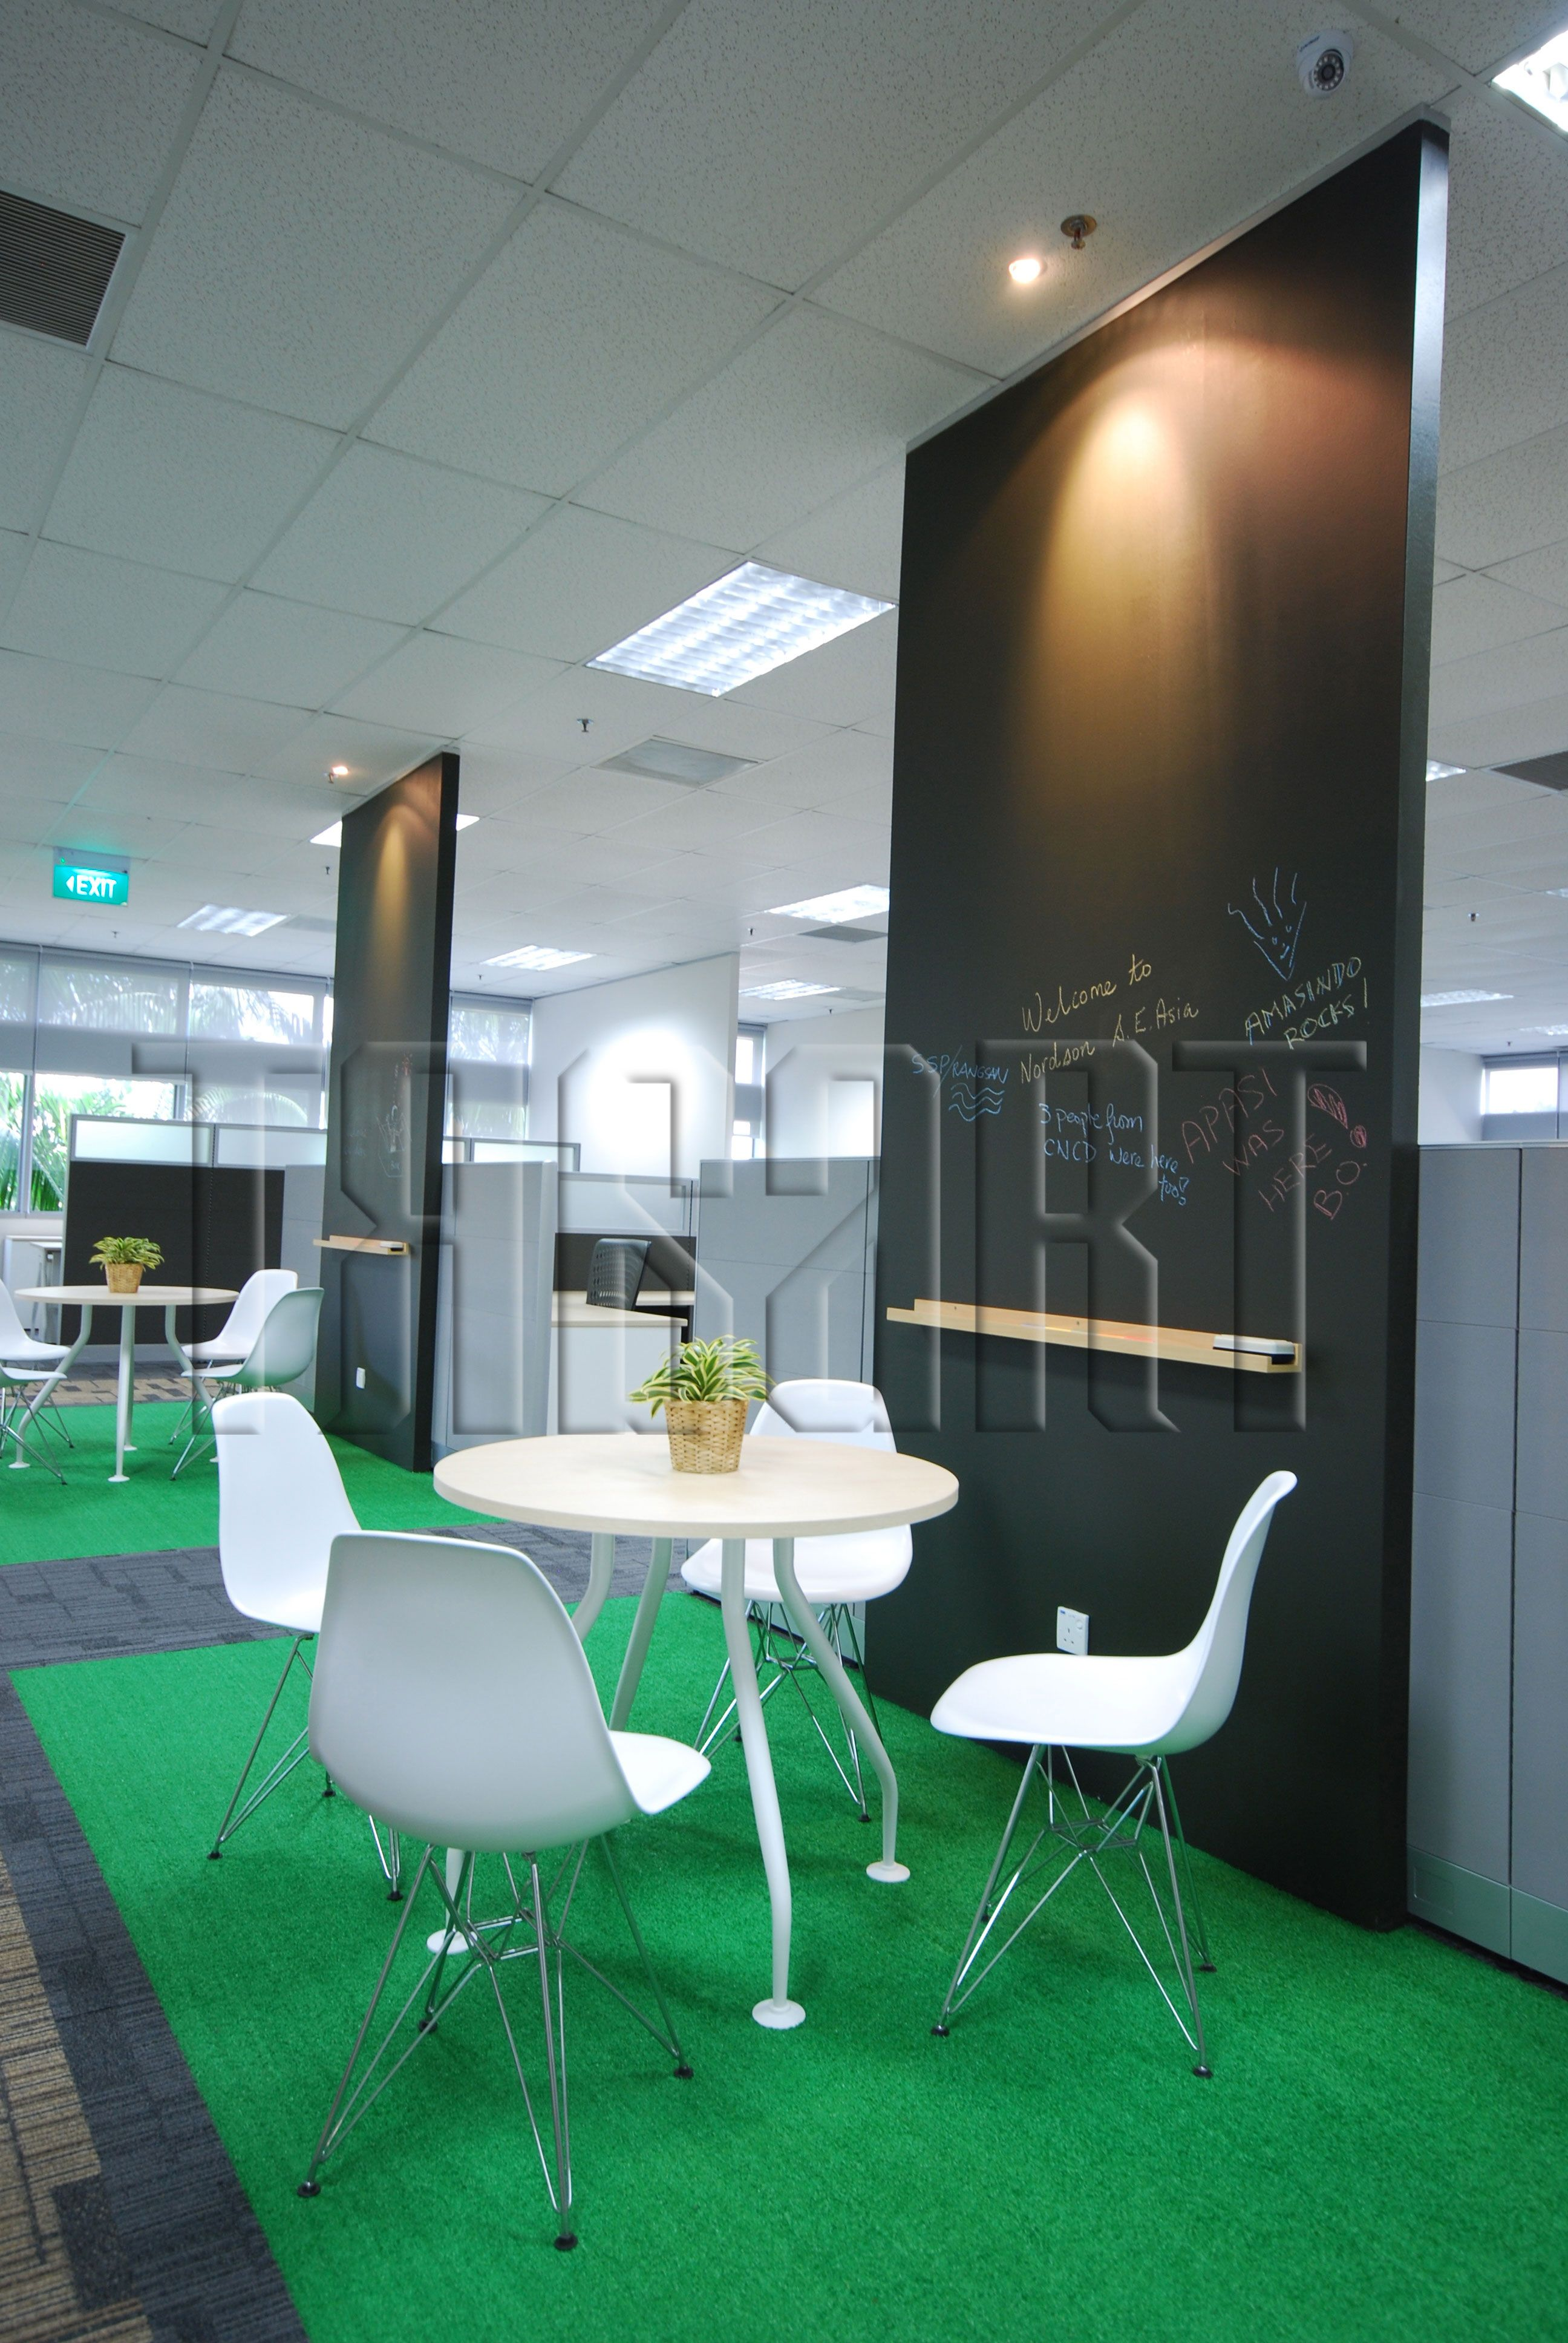 Brainstorming Area Suitable For 2 To 4 Pax With A Chalk Board To